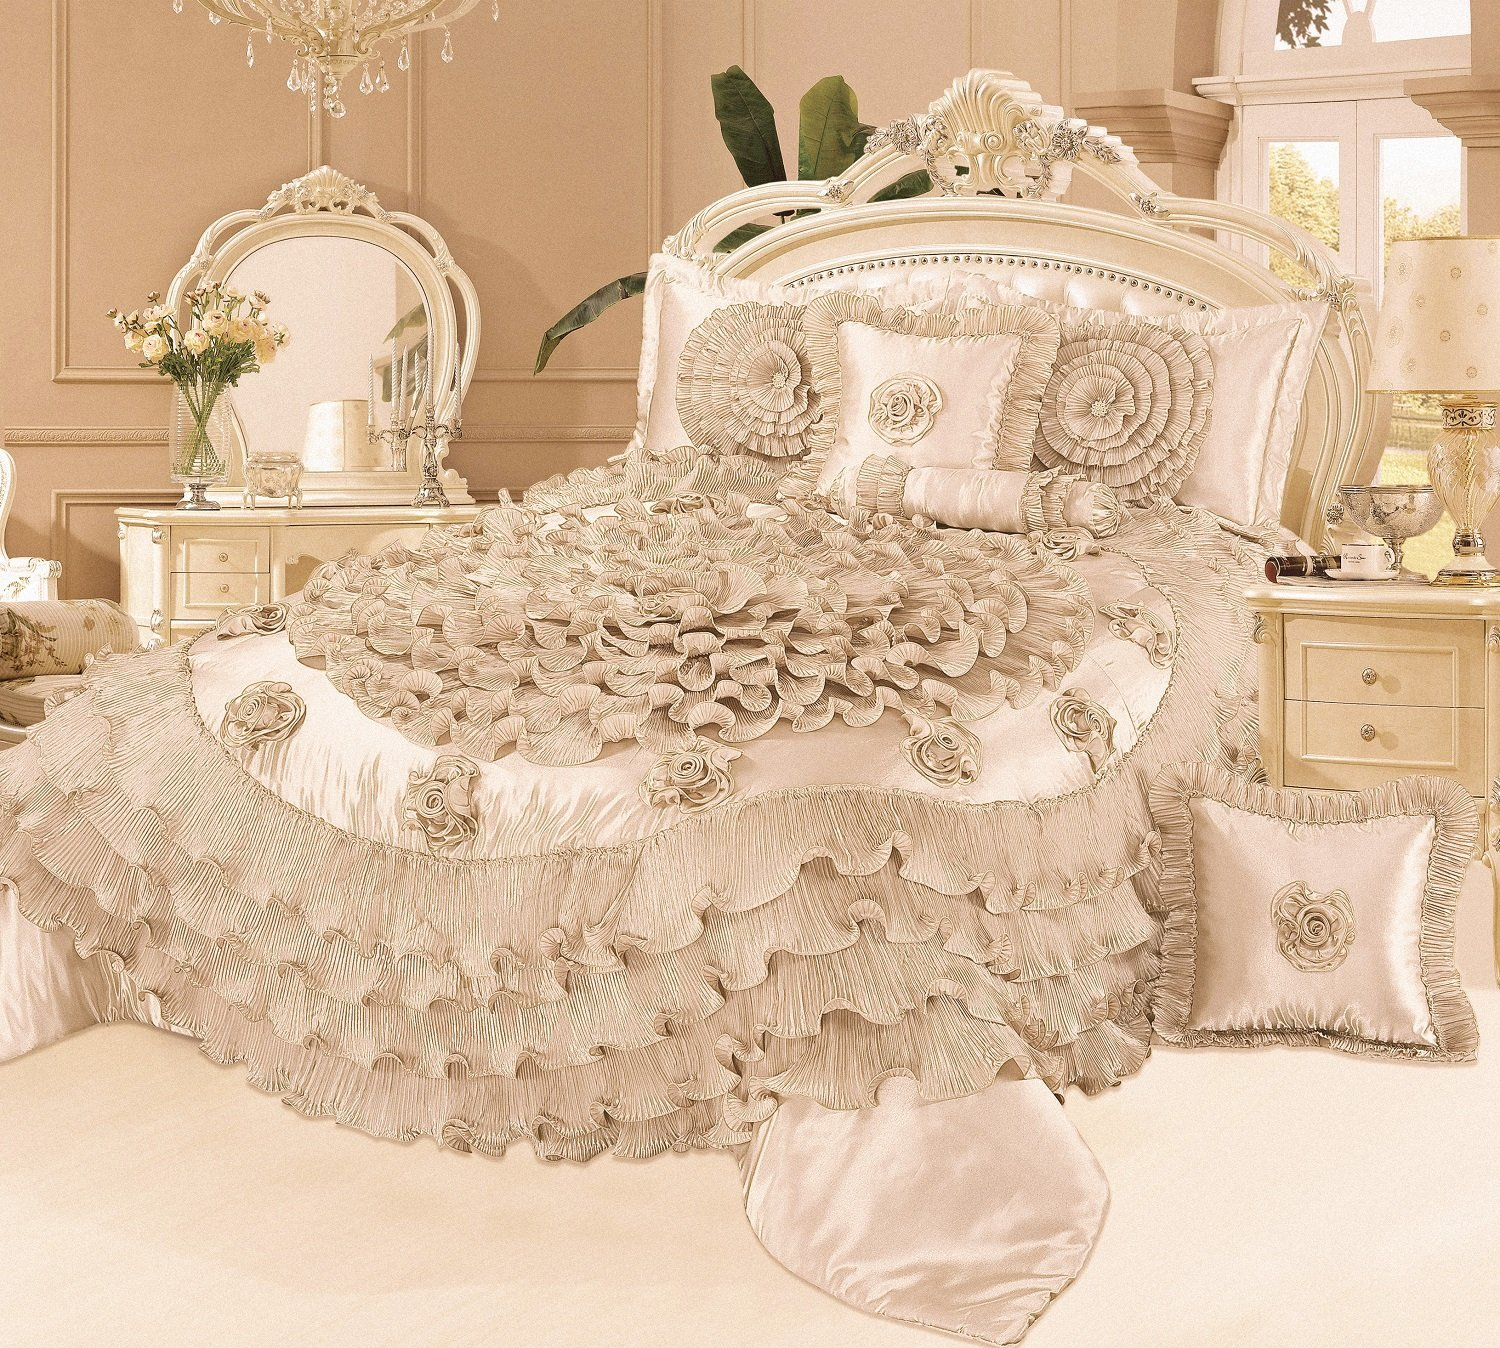 Bedspread Sets | Luxury Comforter Sets | Tahari Home Comforter Set